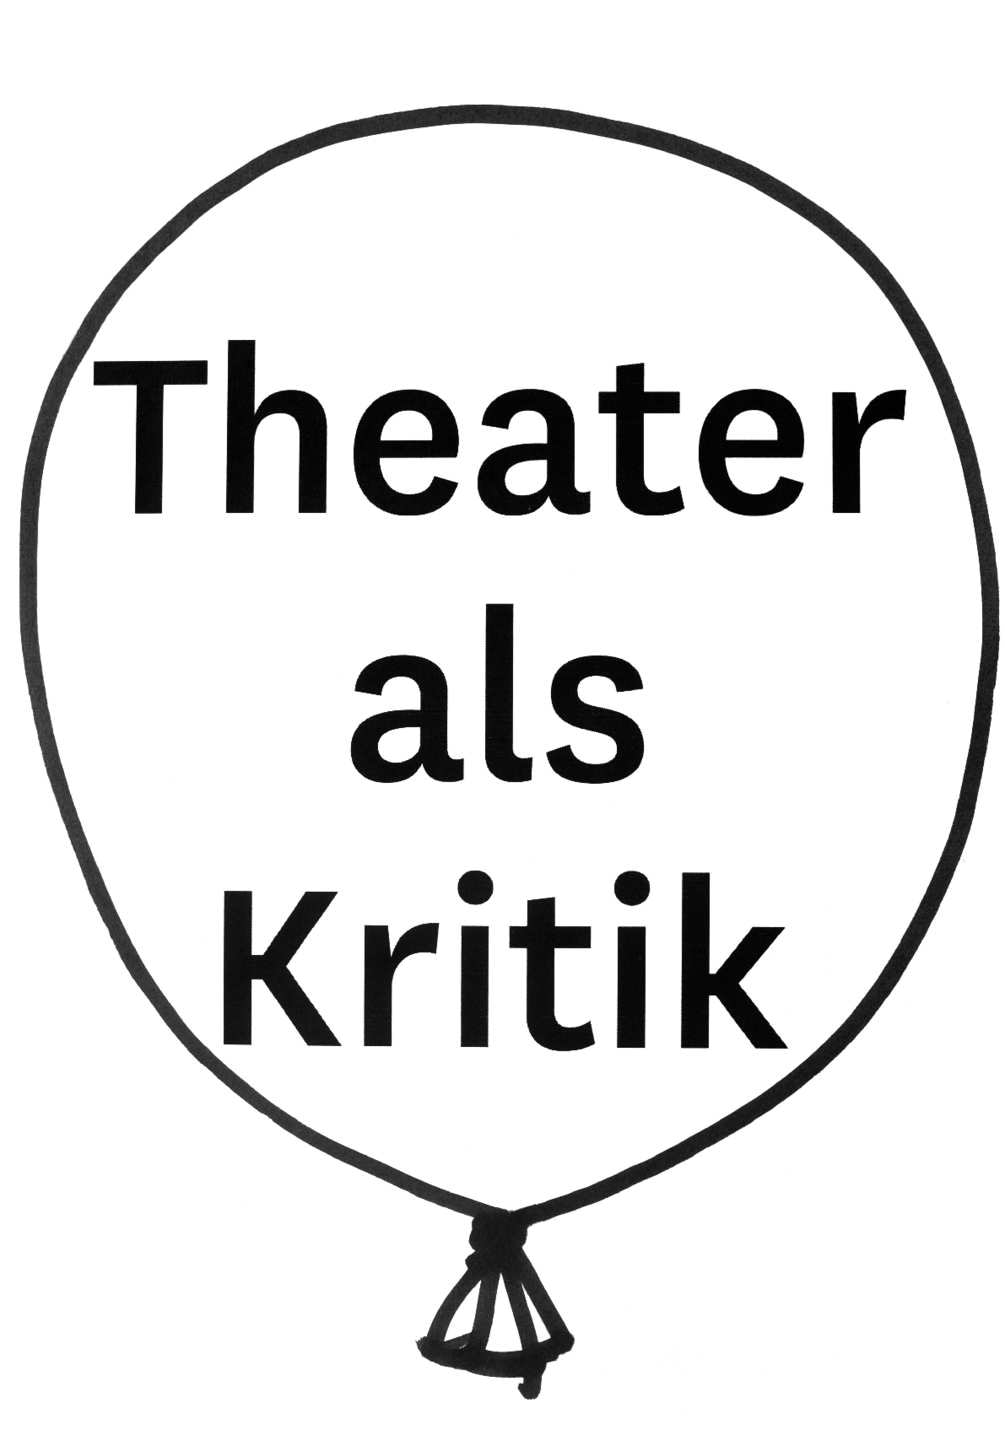 theater-as-critique-slip-19-1005x1435px